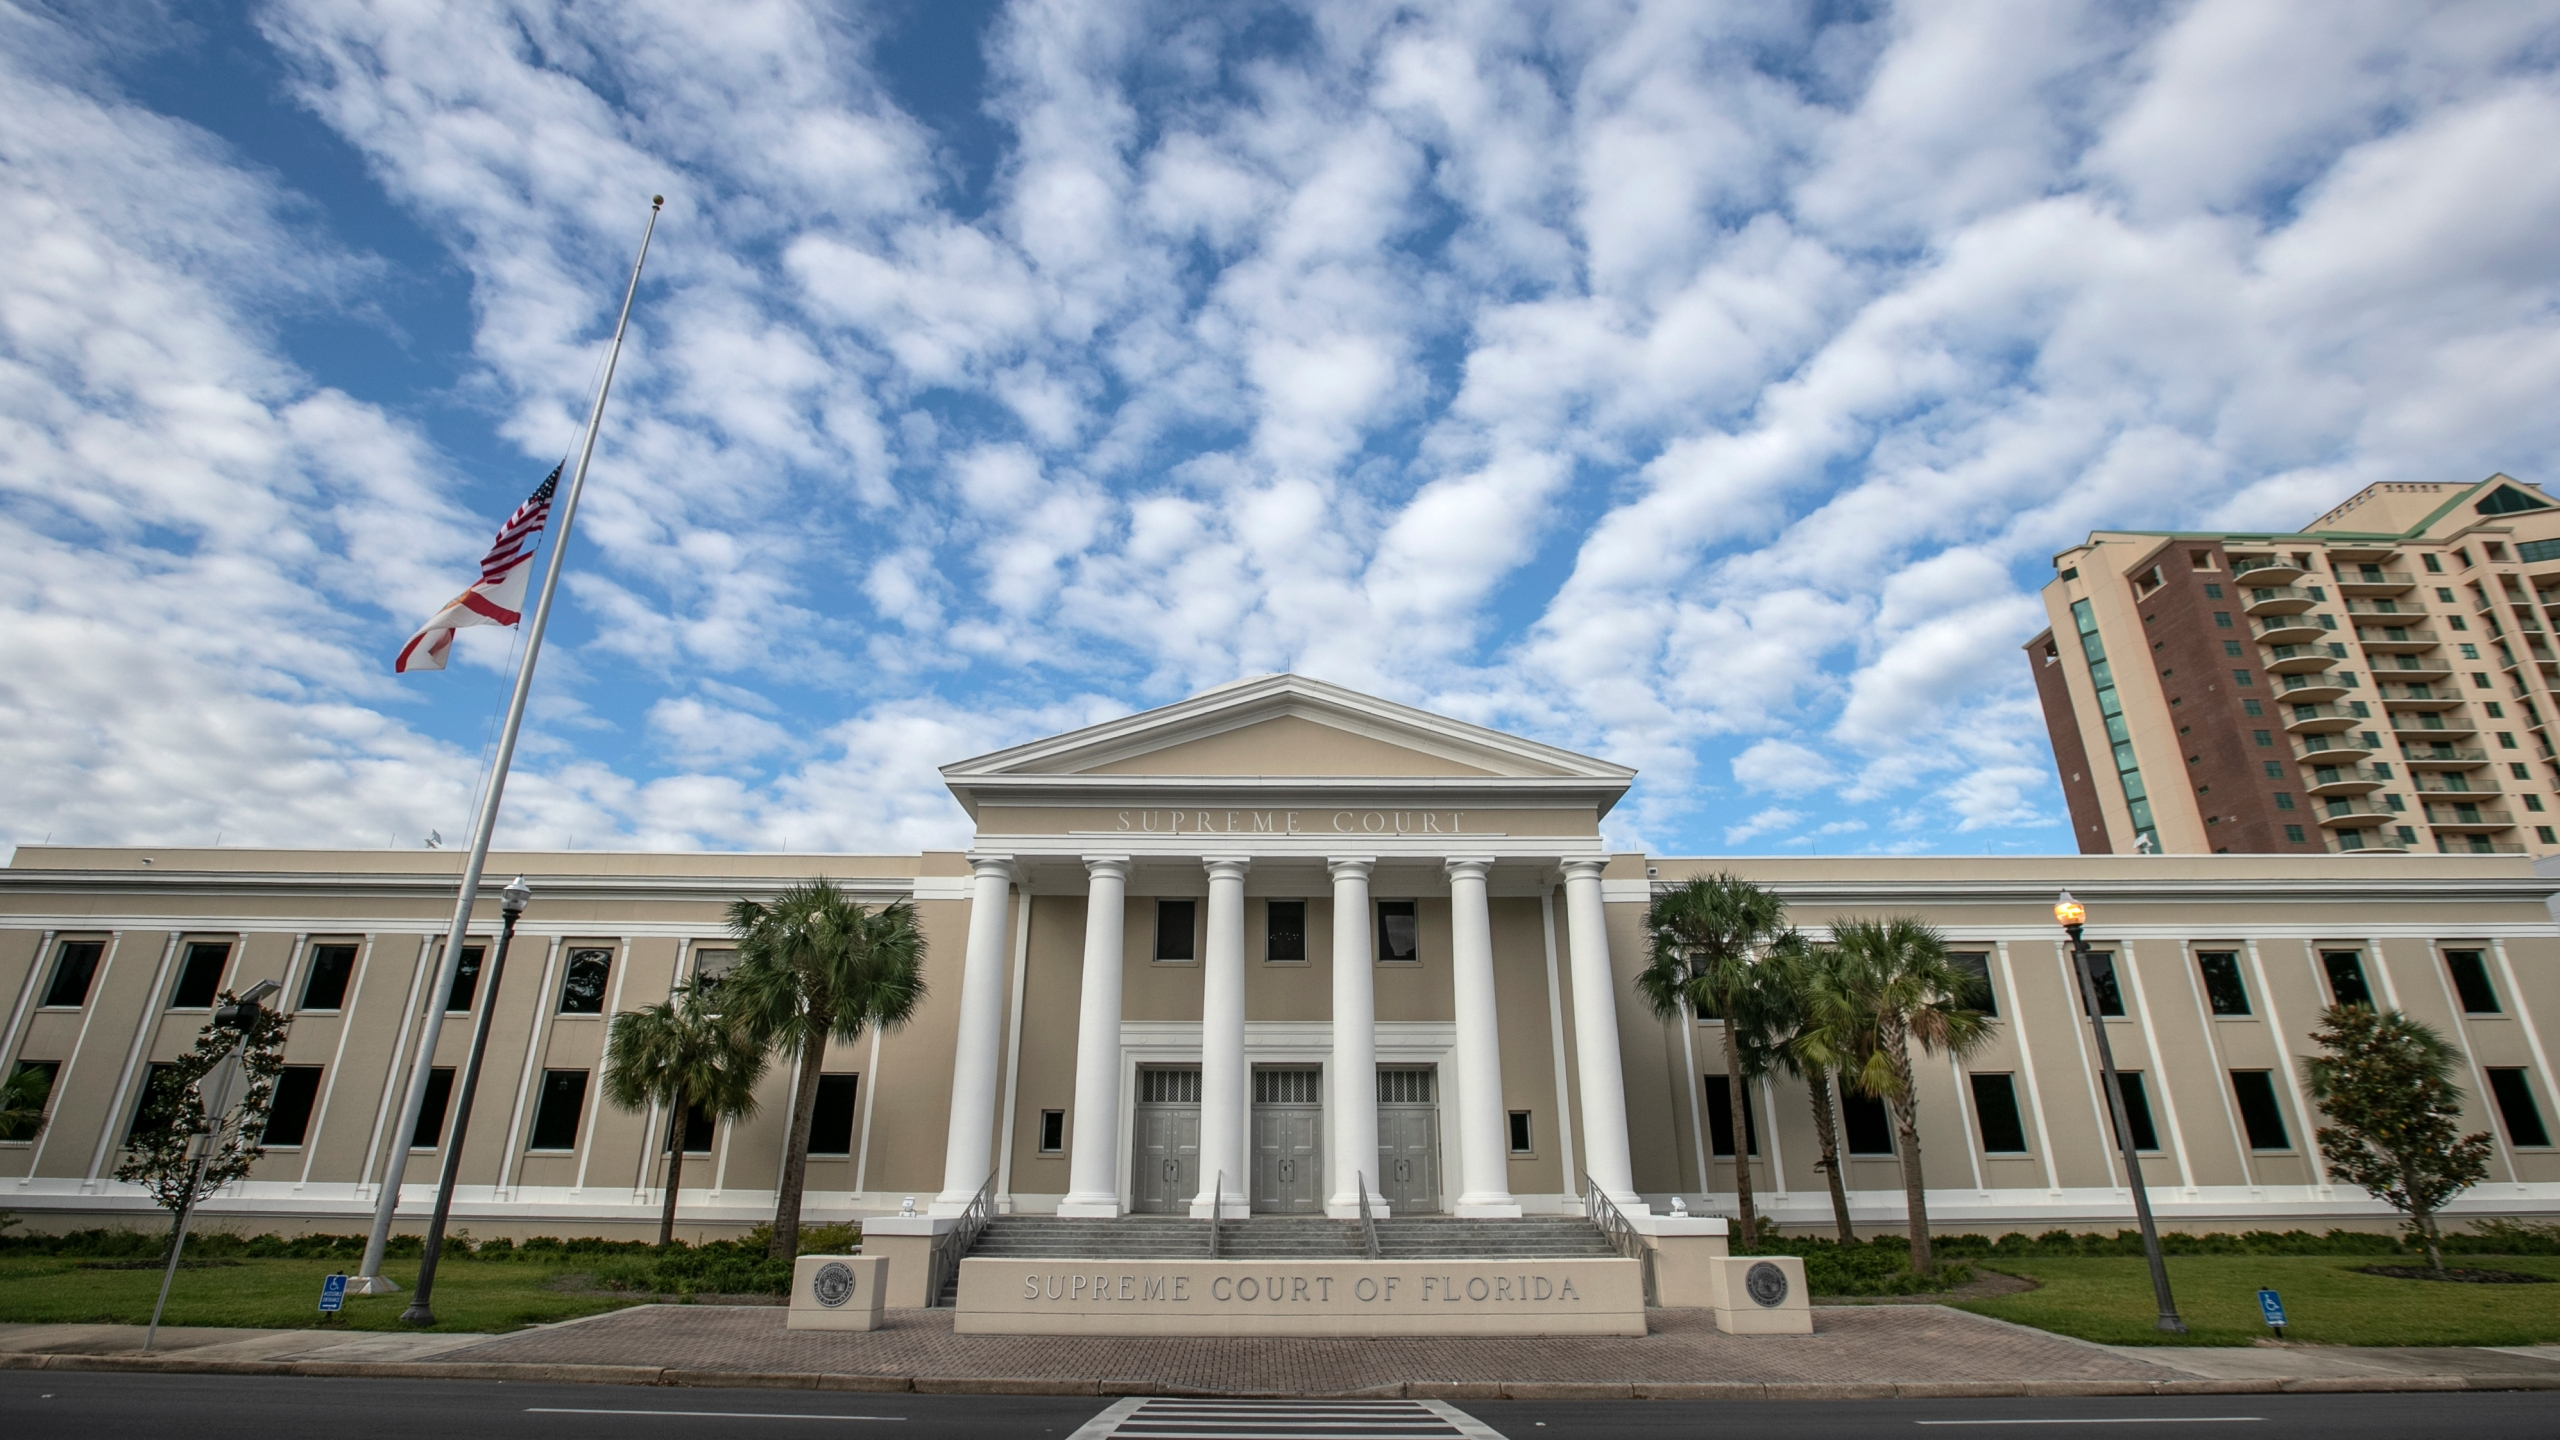 The Florida Supreme Court building is pictured on Nov. 10, 2018 in Tallahassee, Florida. (Credit: Mark Wallheiser/Getty Images)